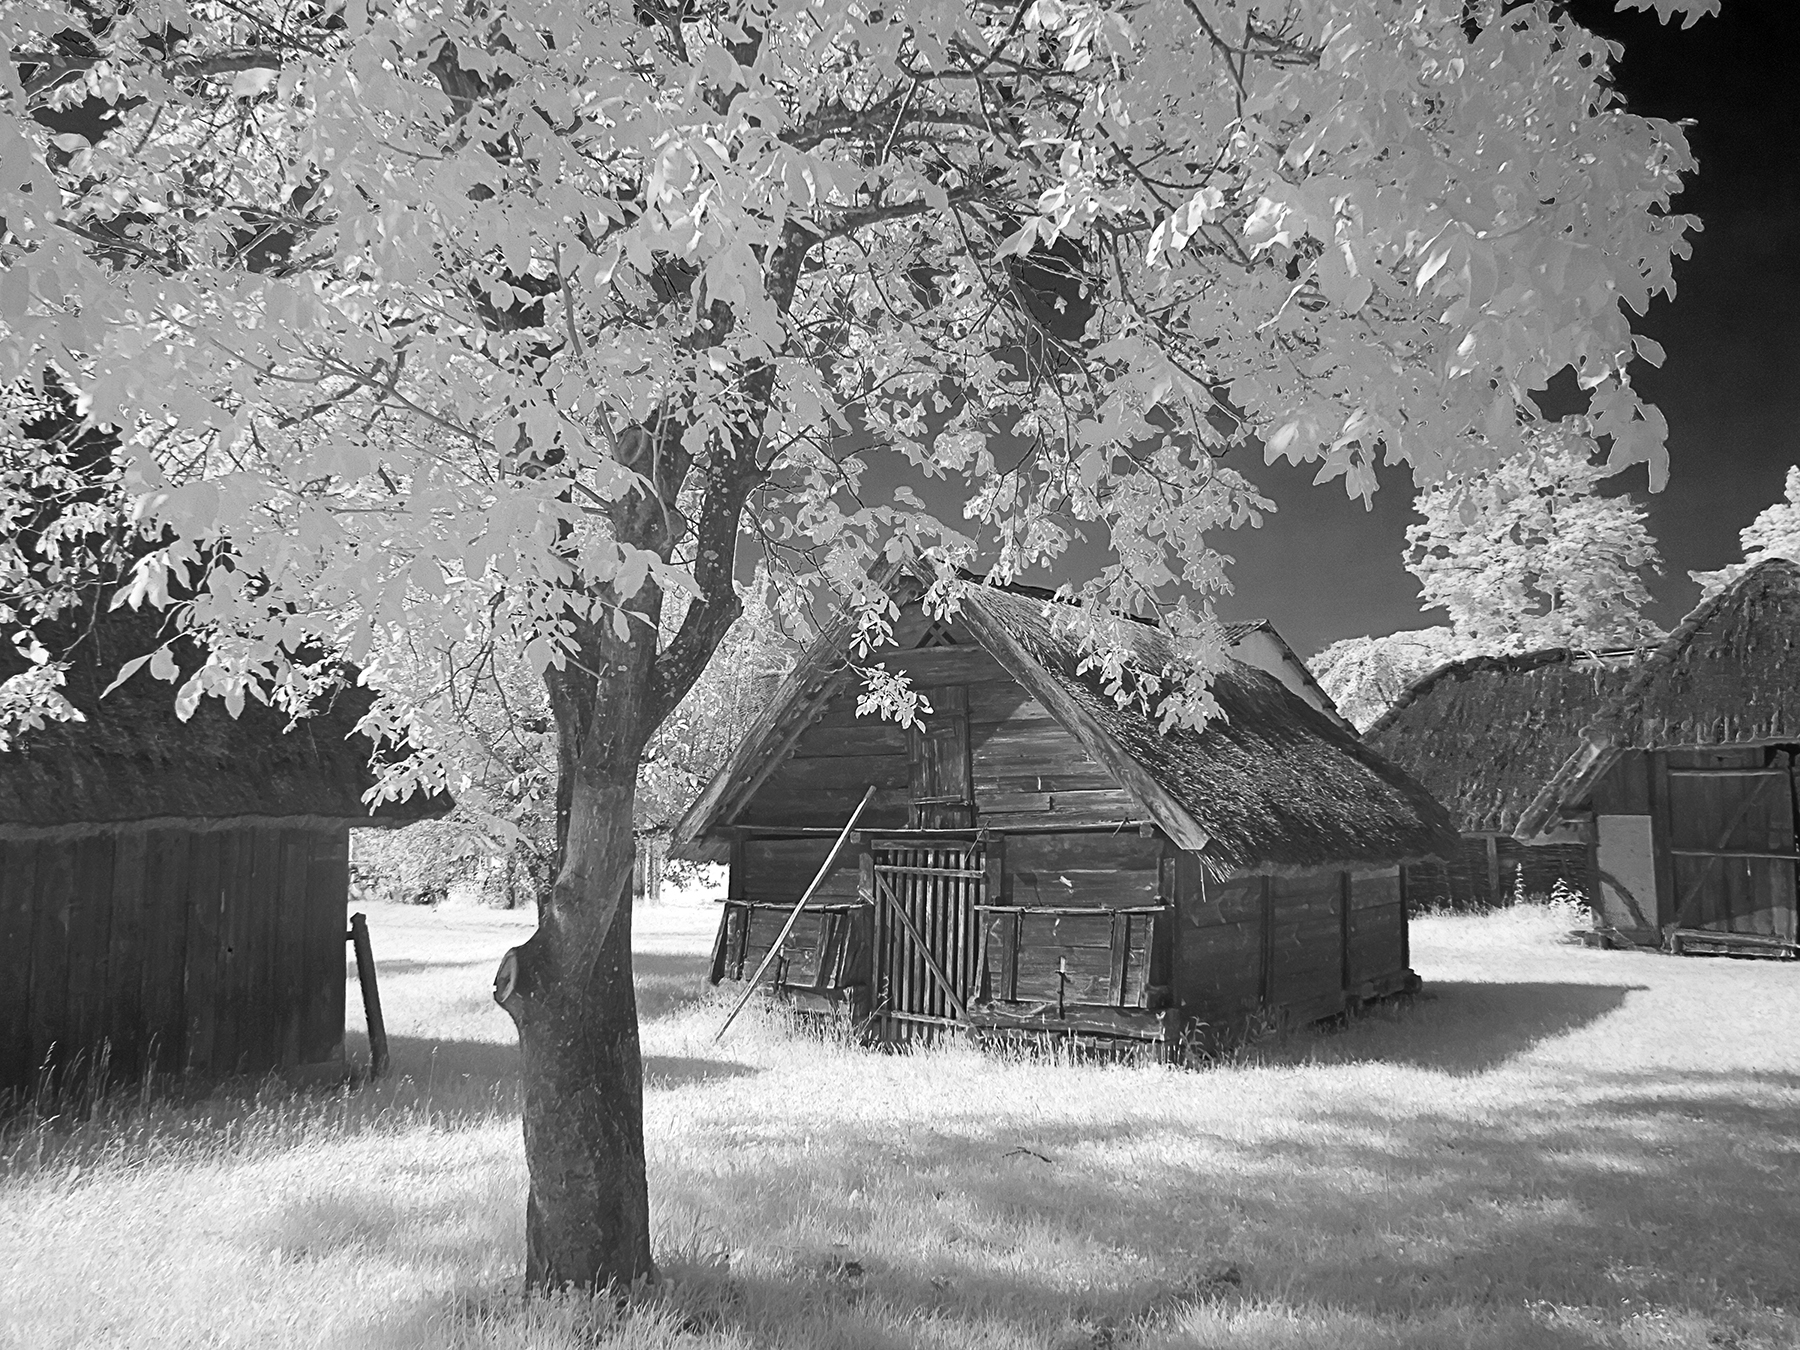 Hungary Old Wood House 2615